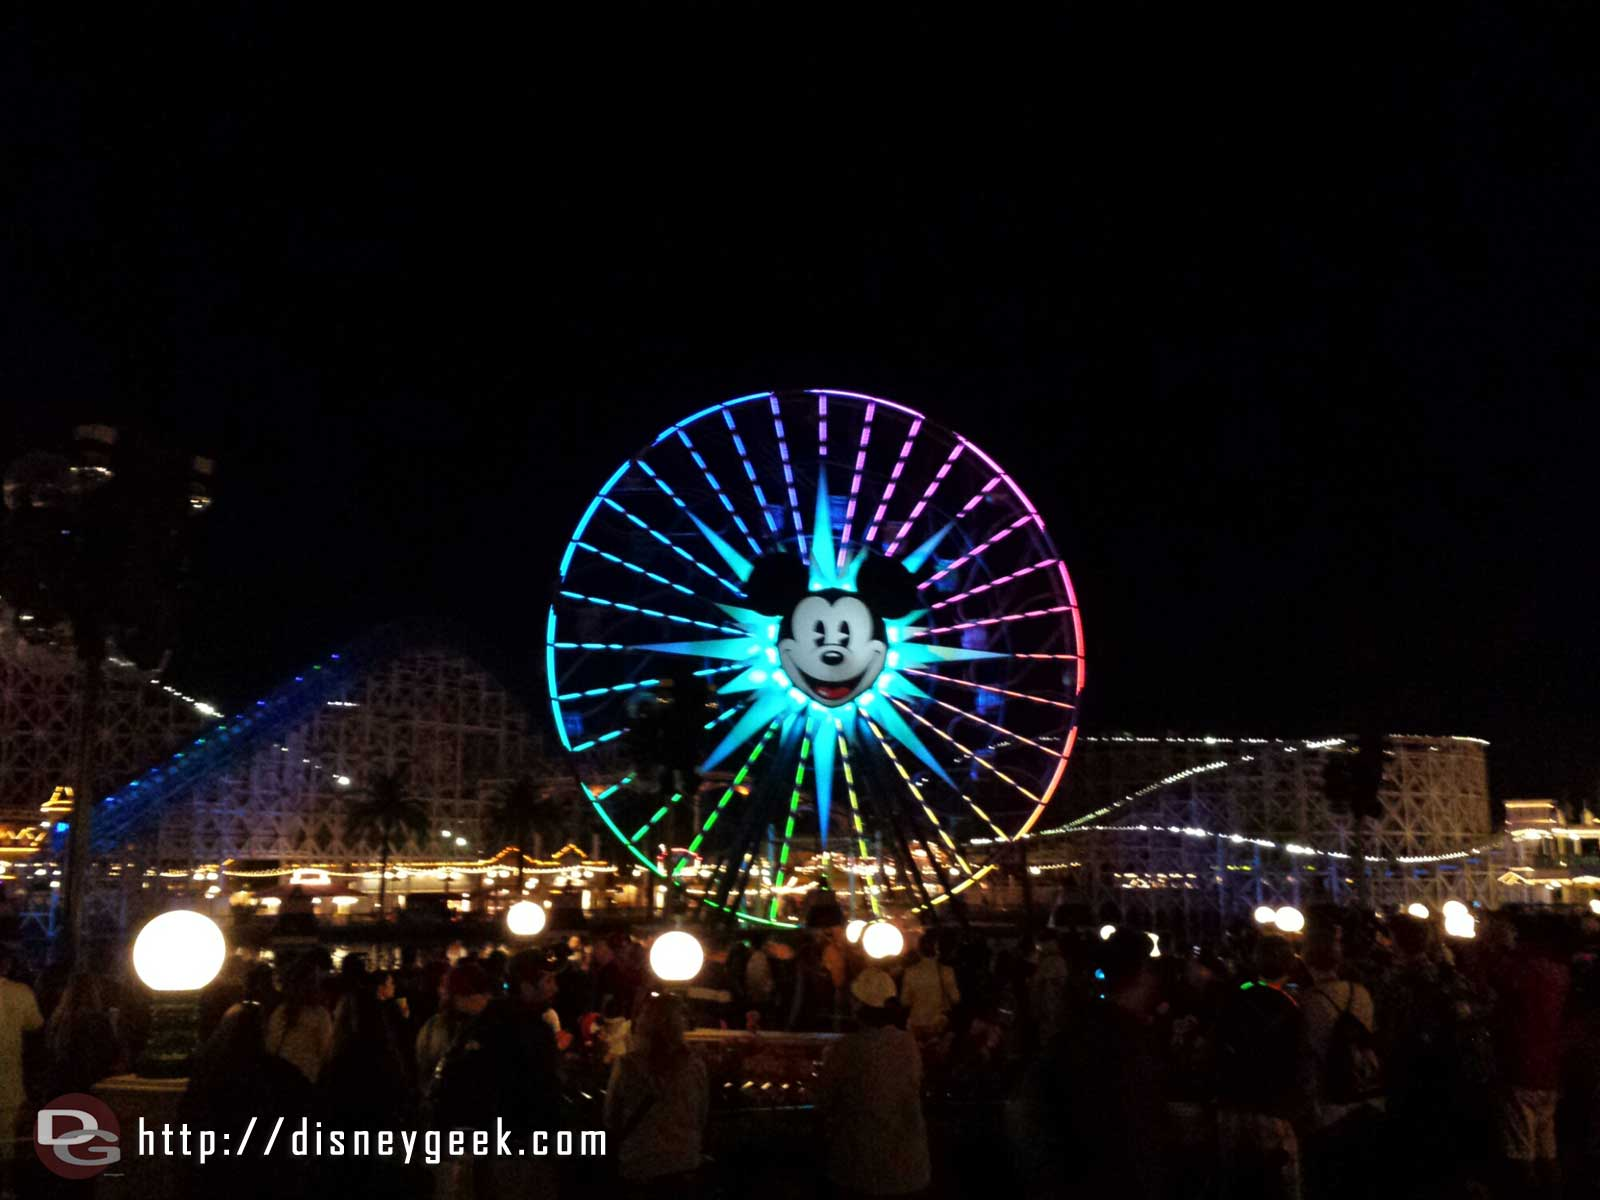 Waiting for World of Color Winter Dreams